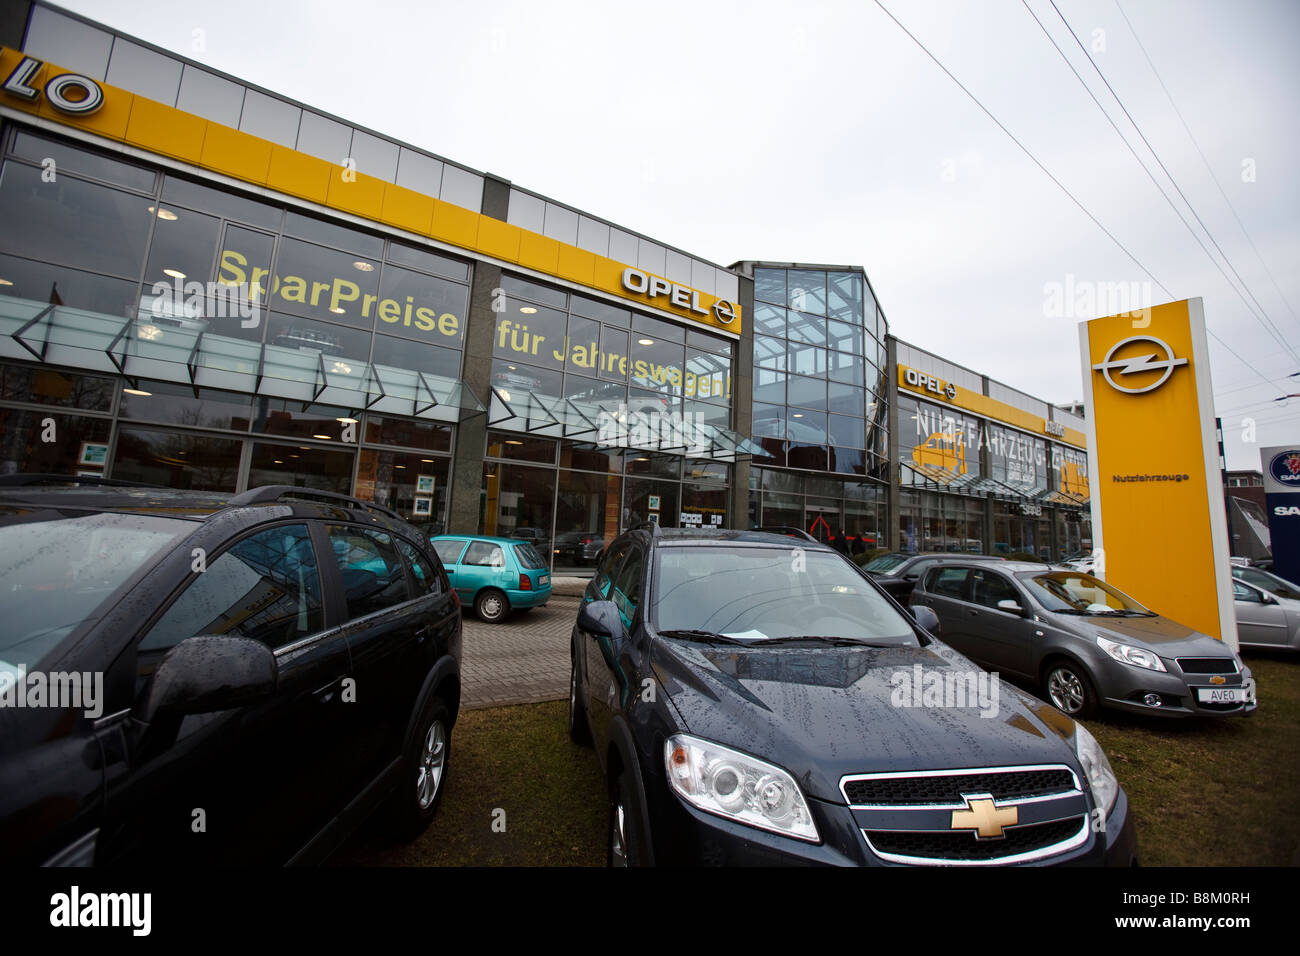 Chevrolet and Opel cars for sale at an car dealership in Hamburg, Germany - Stock Image